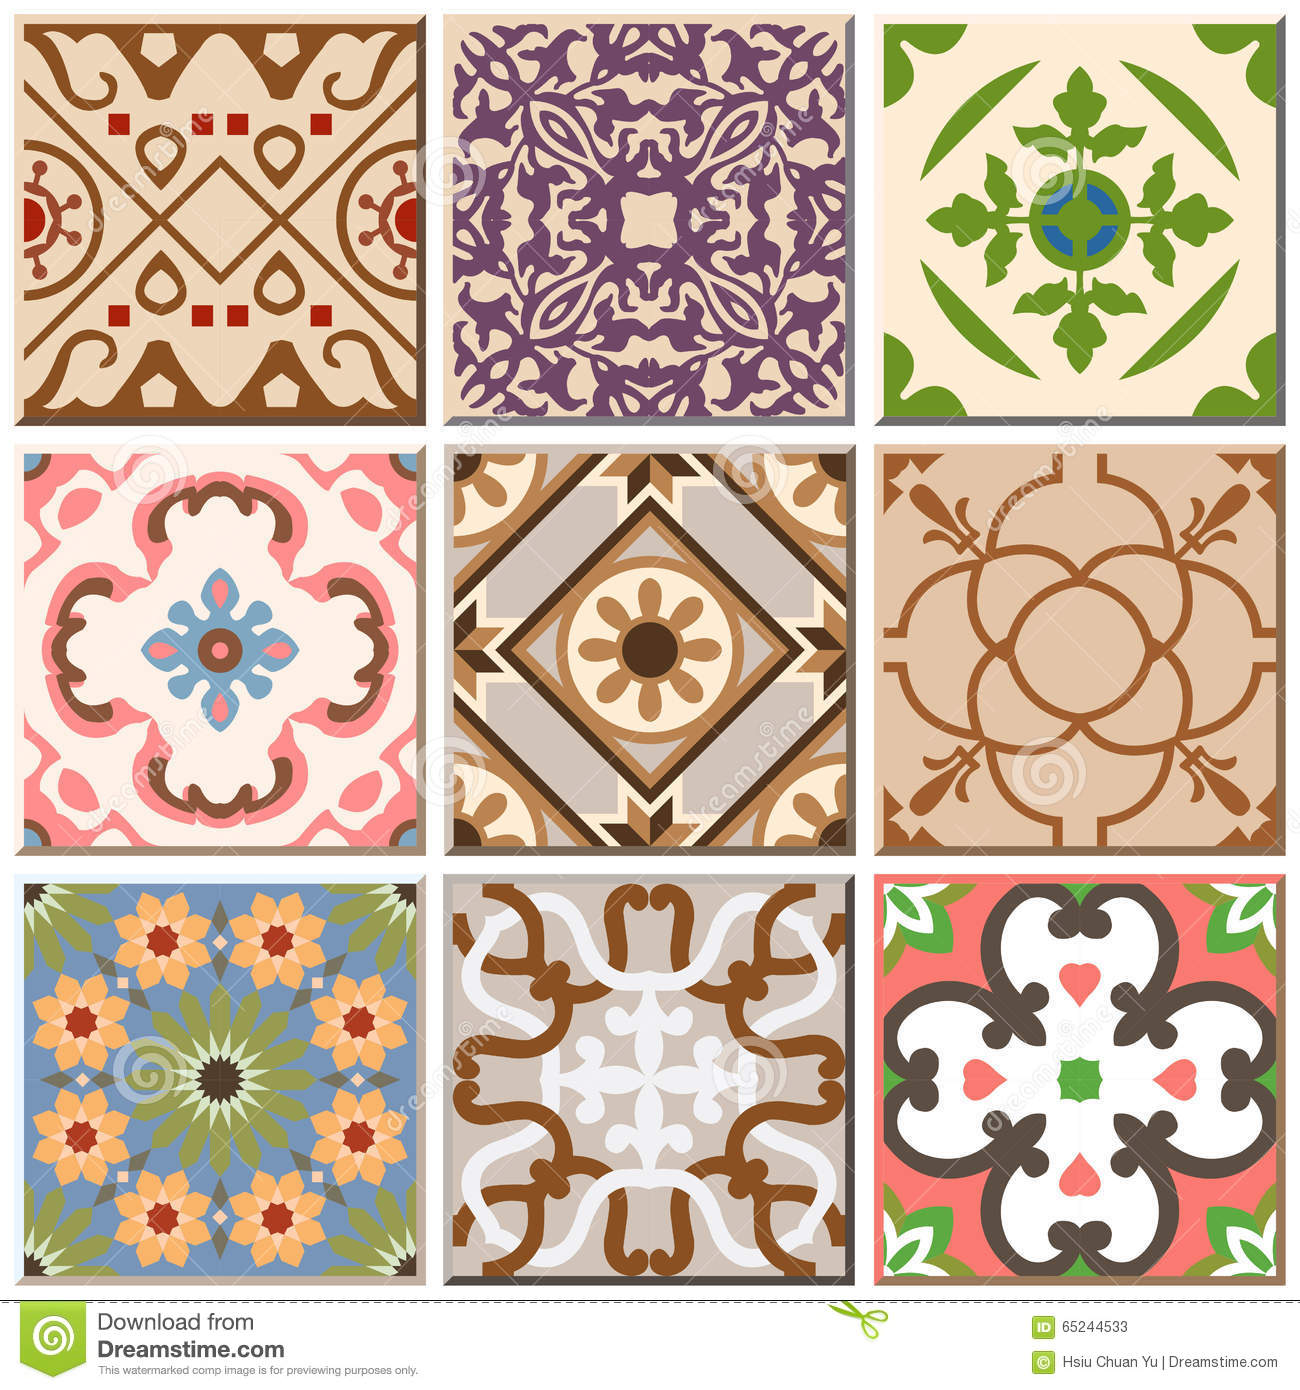 Vintage retro ceramic tile pattern set collection 002 stock vector vintage retro ceramic tile pattern set collection 002 doublecrazyfo Image collections